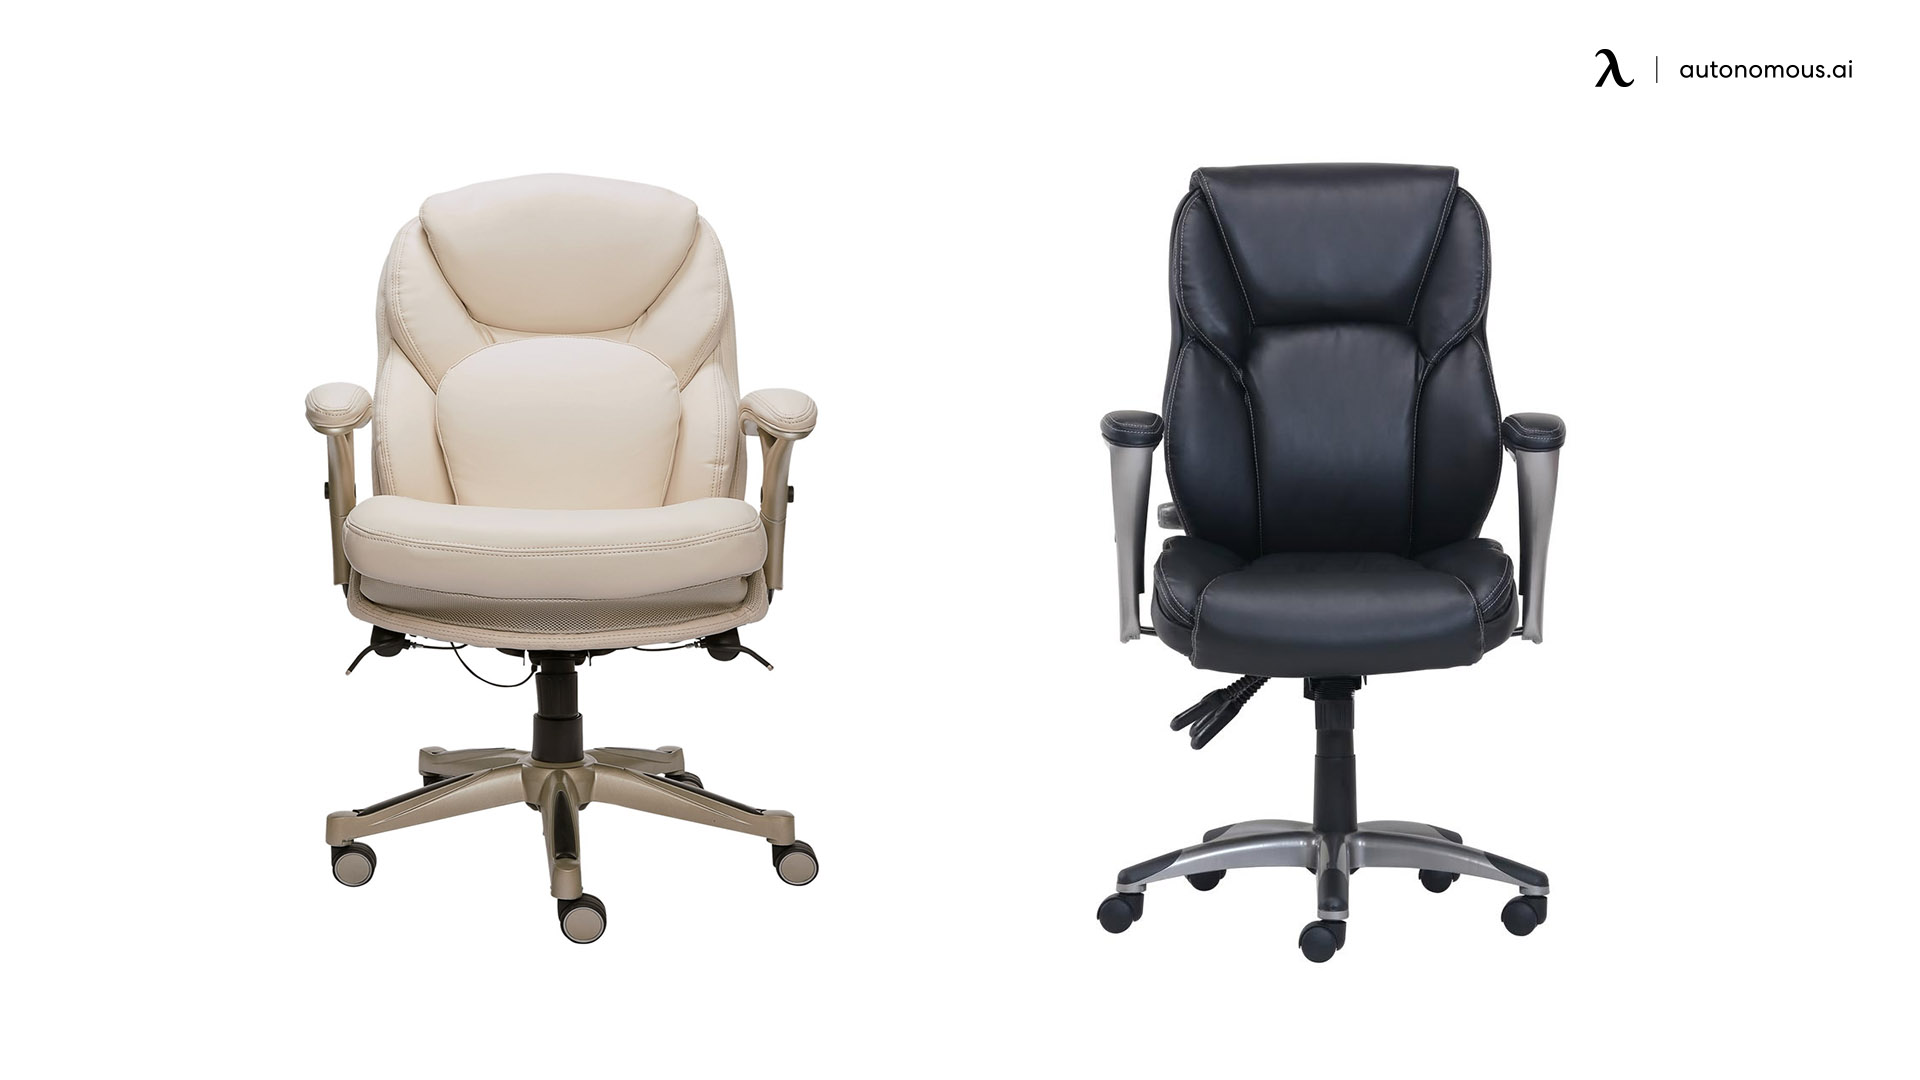 Executive Office Chair from Serta